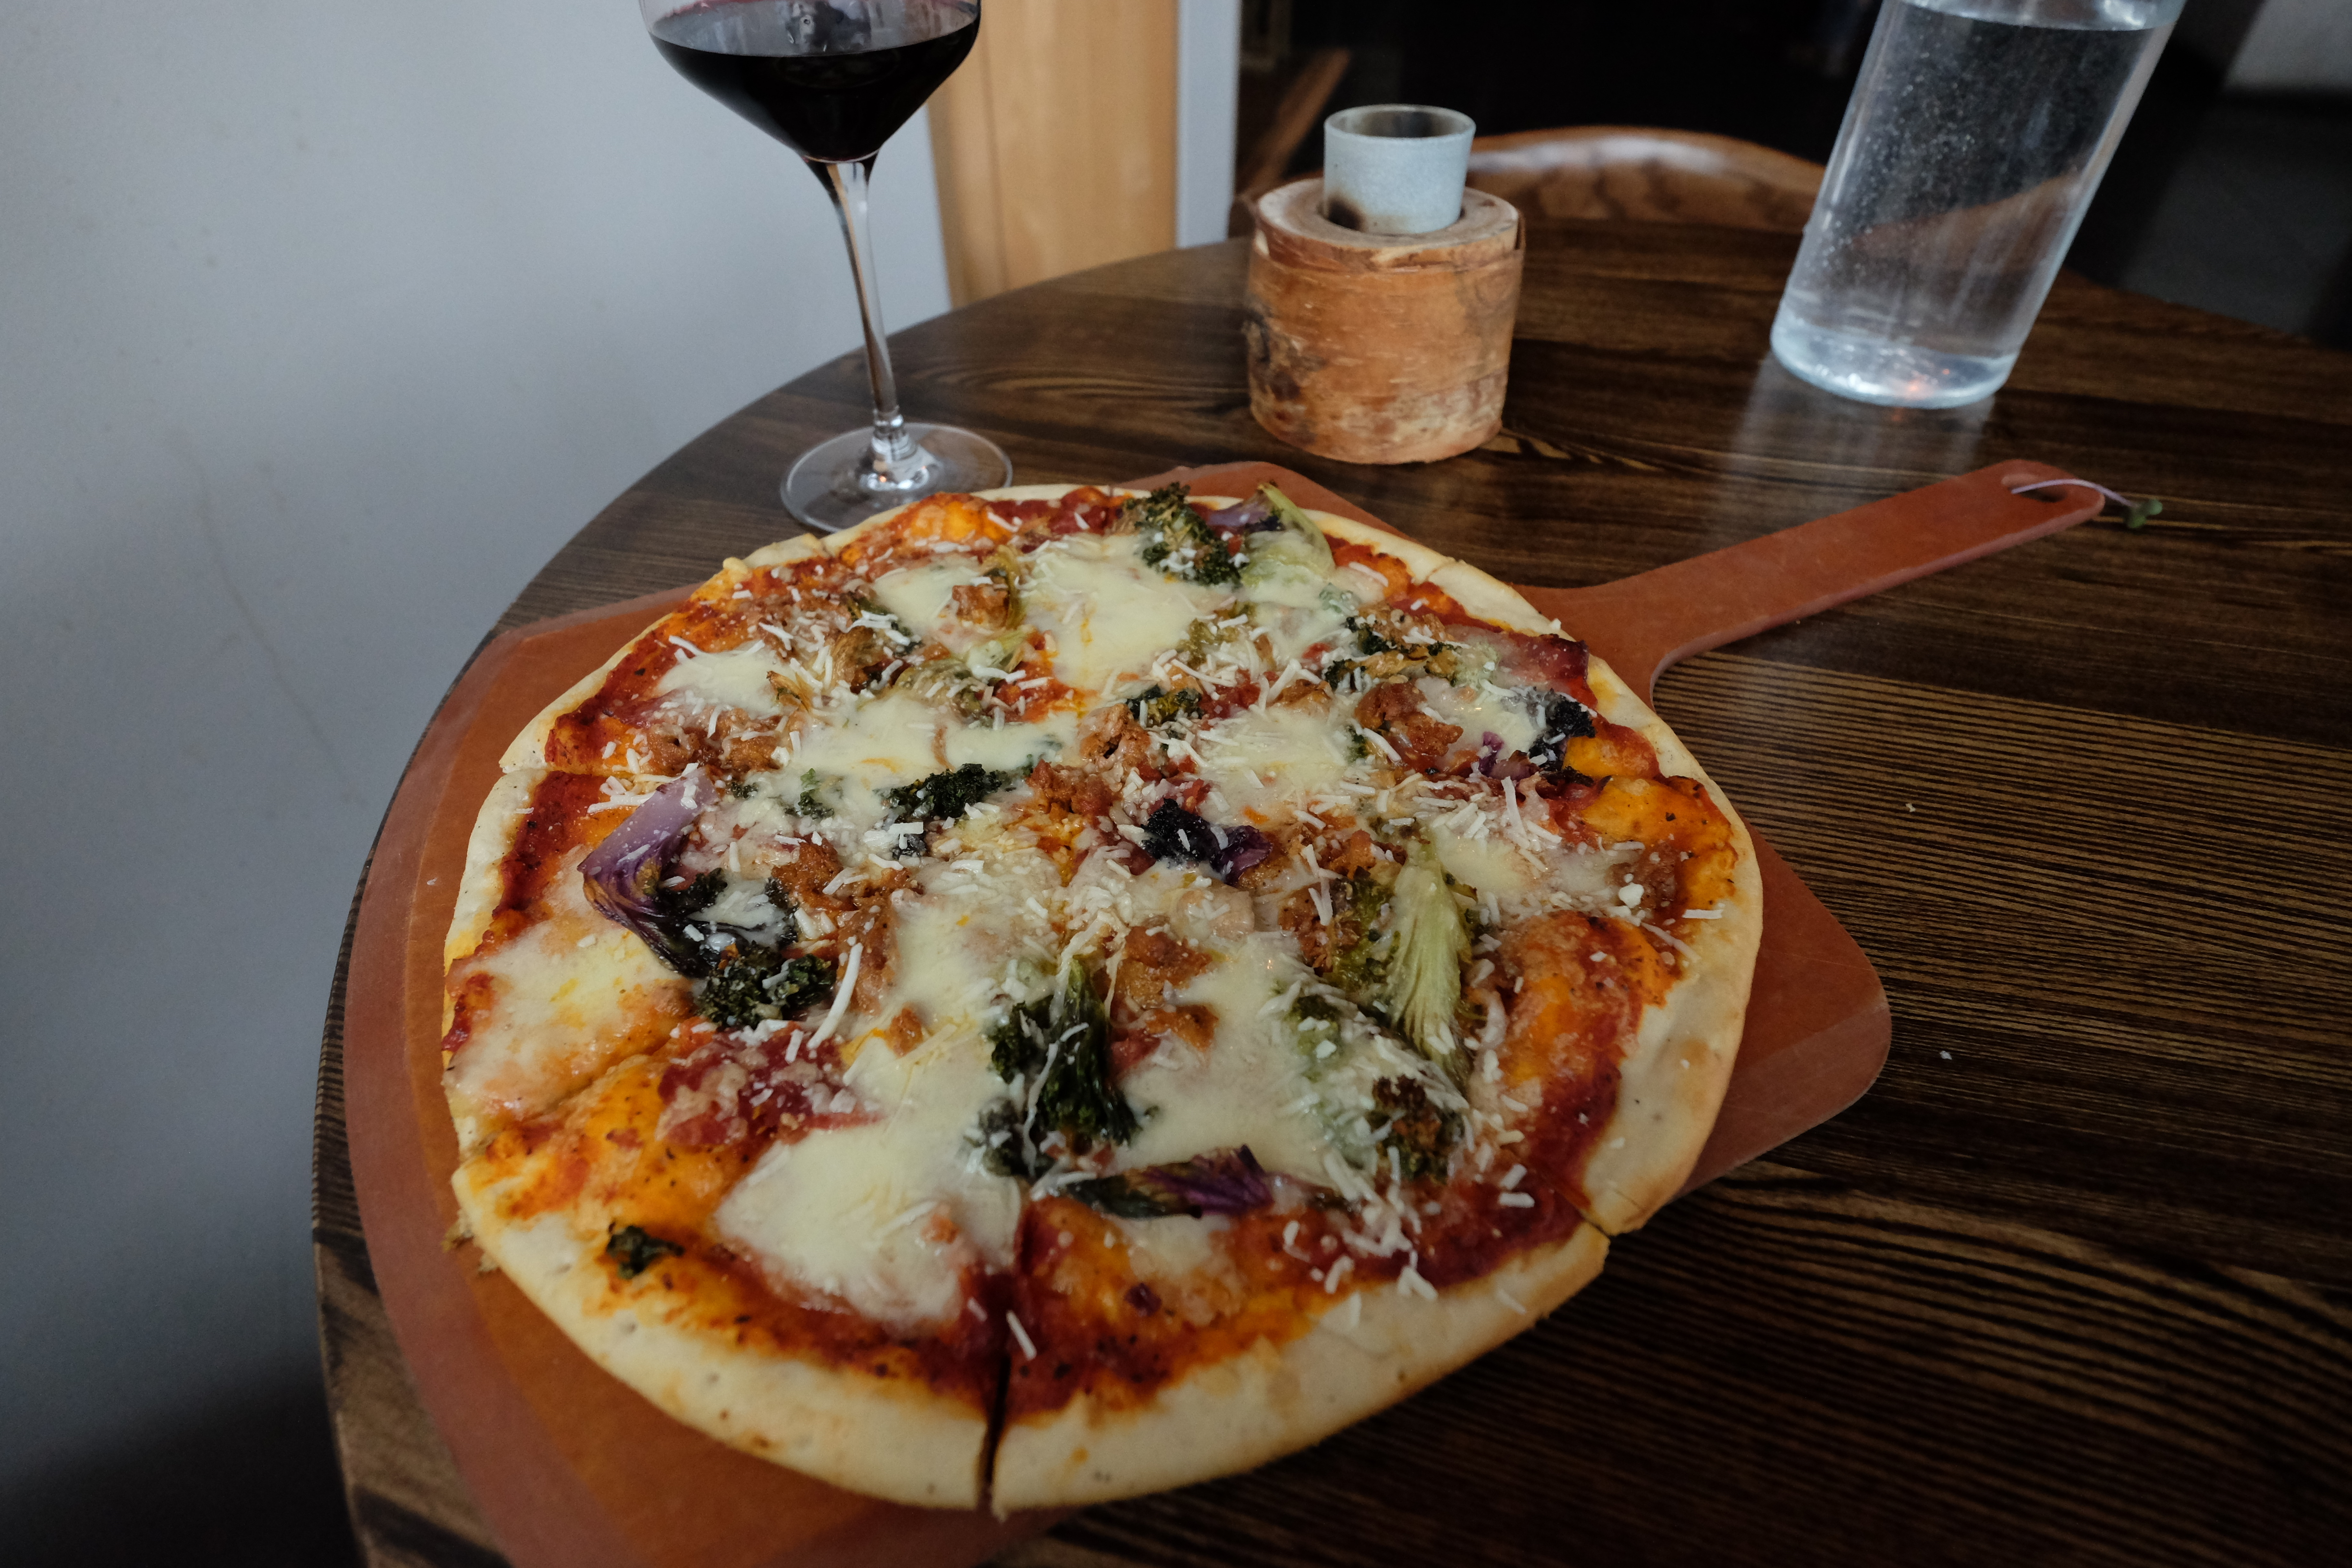 They make an excellent pizza with roasted veggies at Bight, located on the renovated Thunder Bay waterfront. JIM BYERS PHOTO